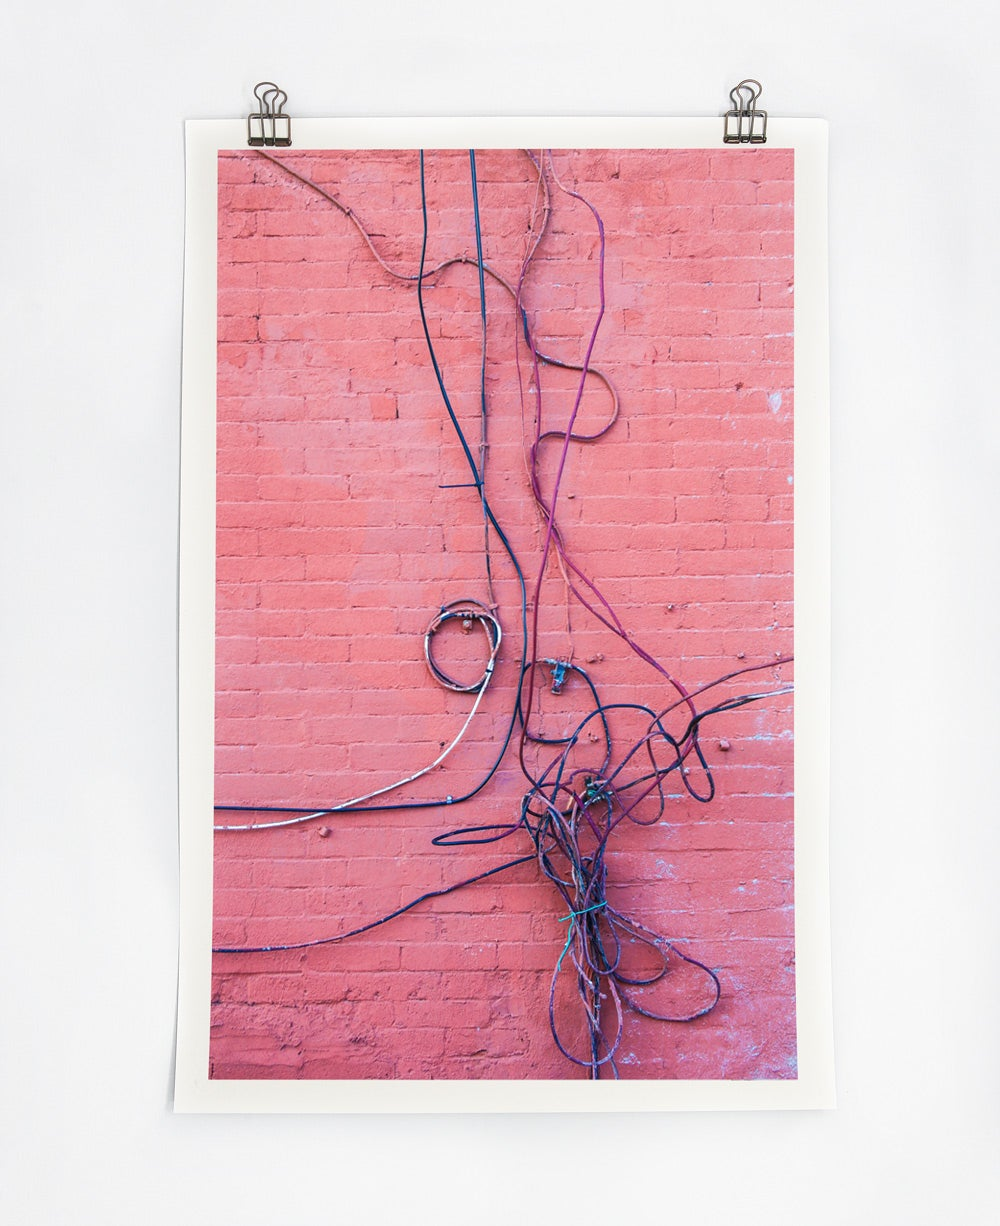 Image of Wires